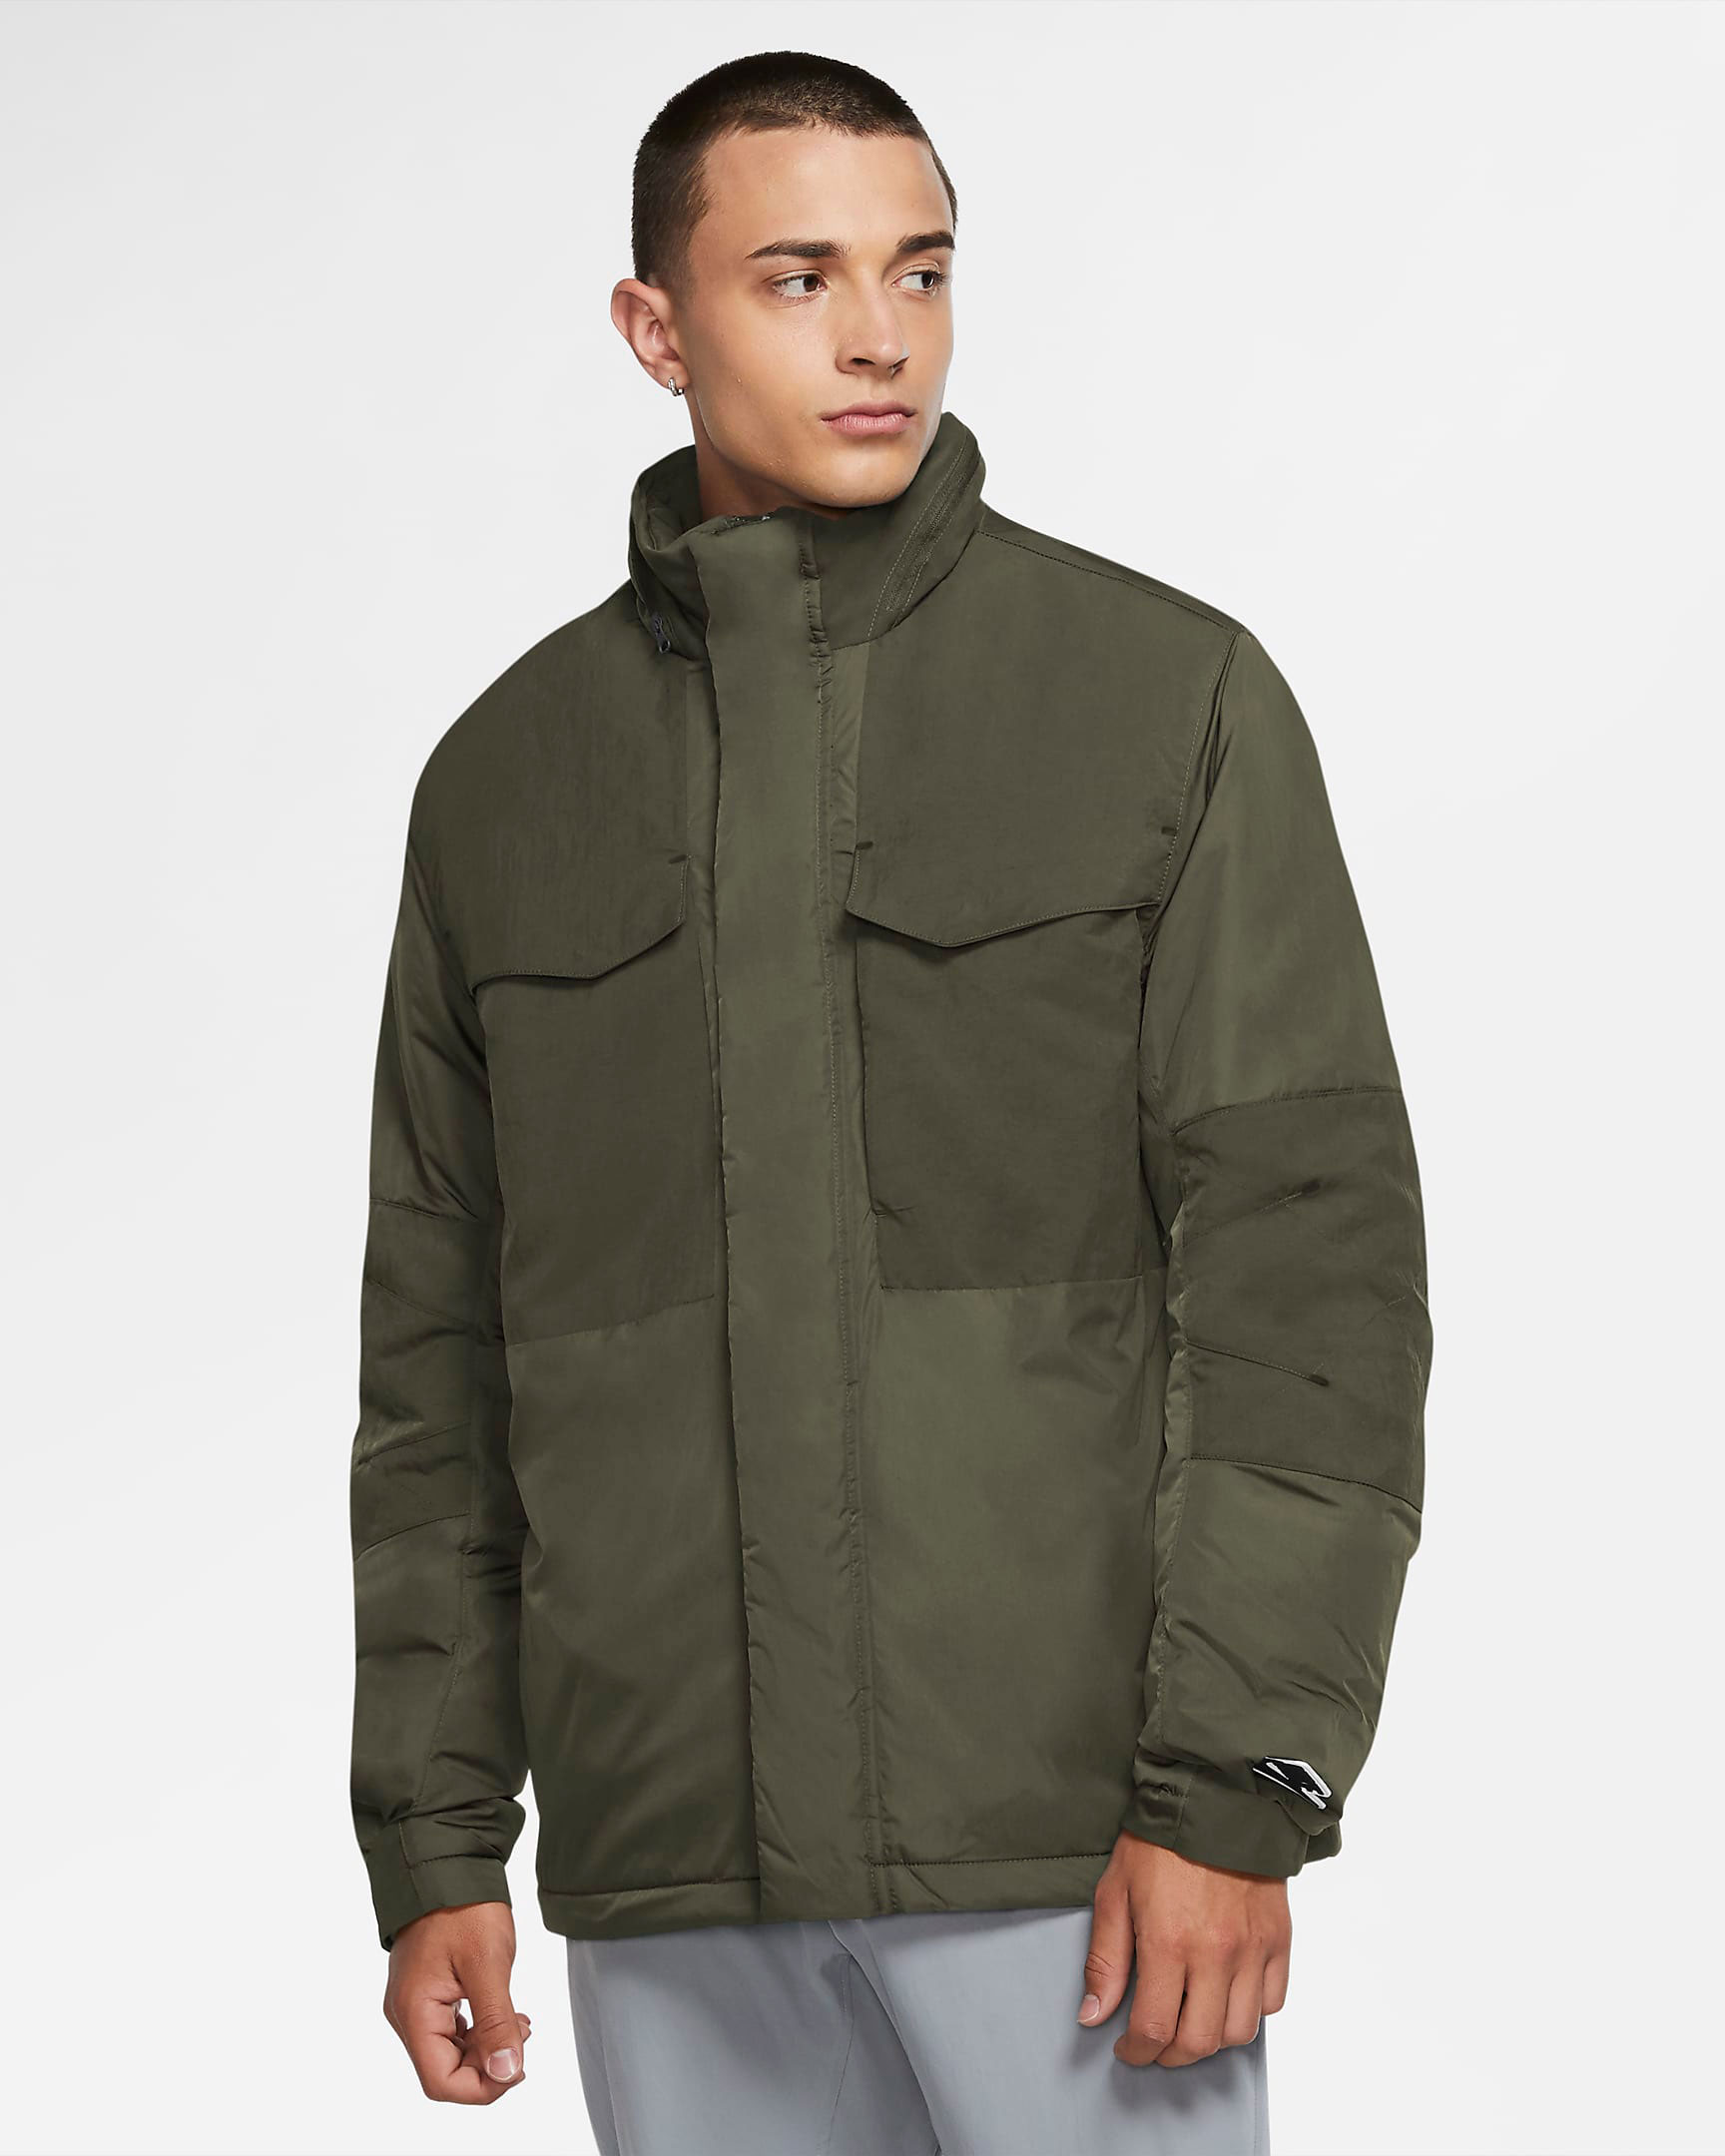 nike-sportswear-repel-m65-jacket-twilight-marsh-olive-green